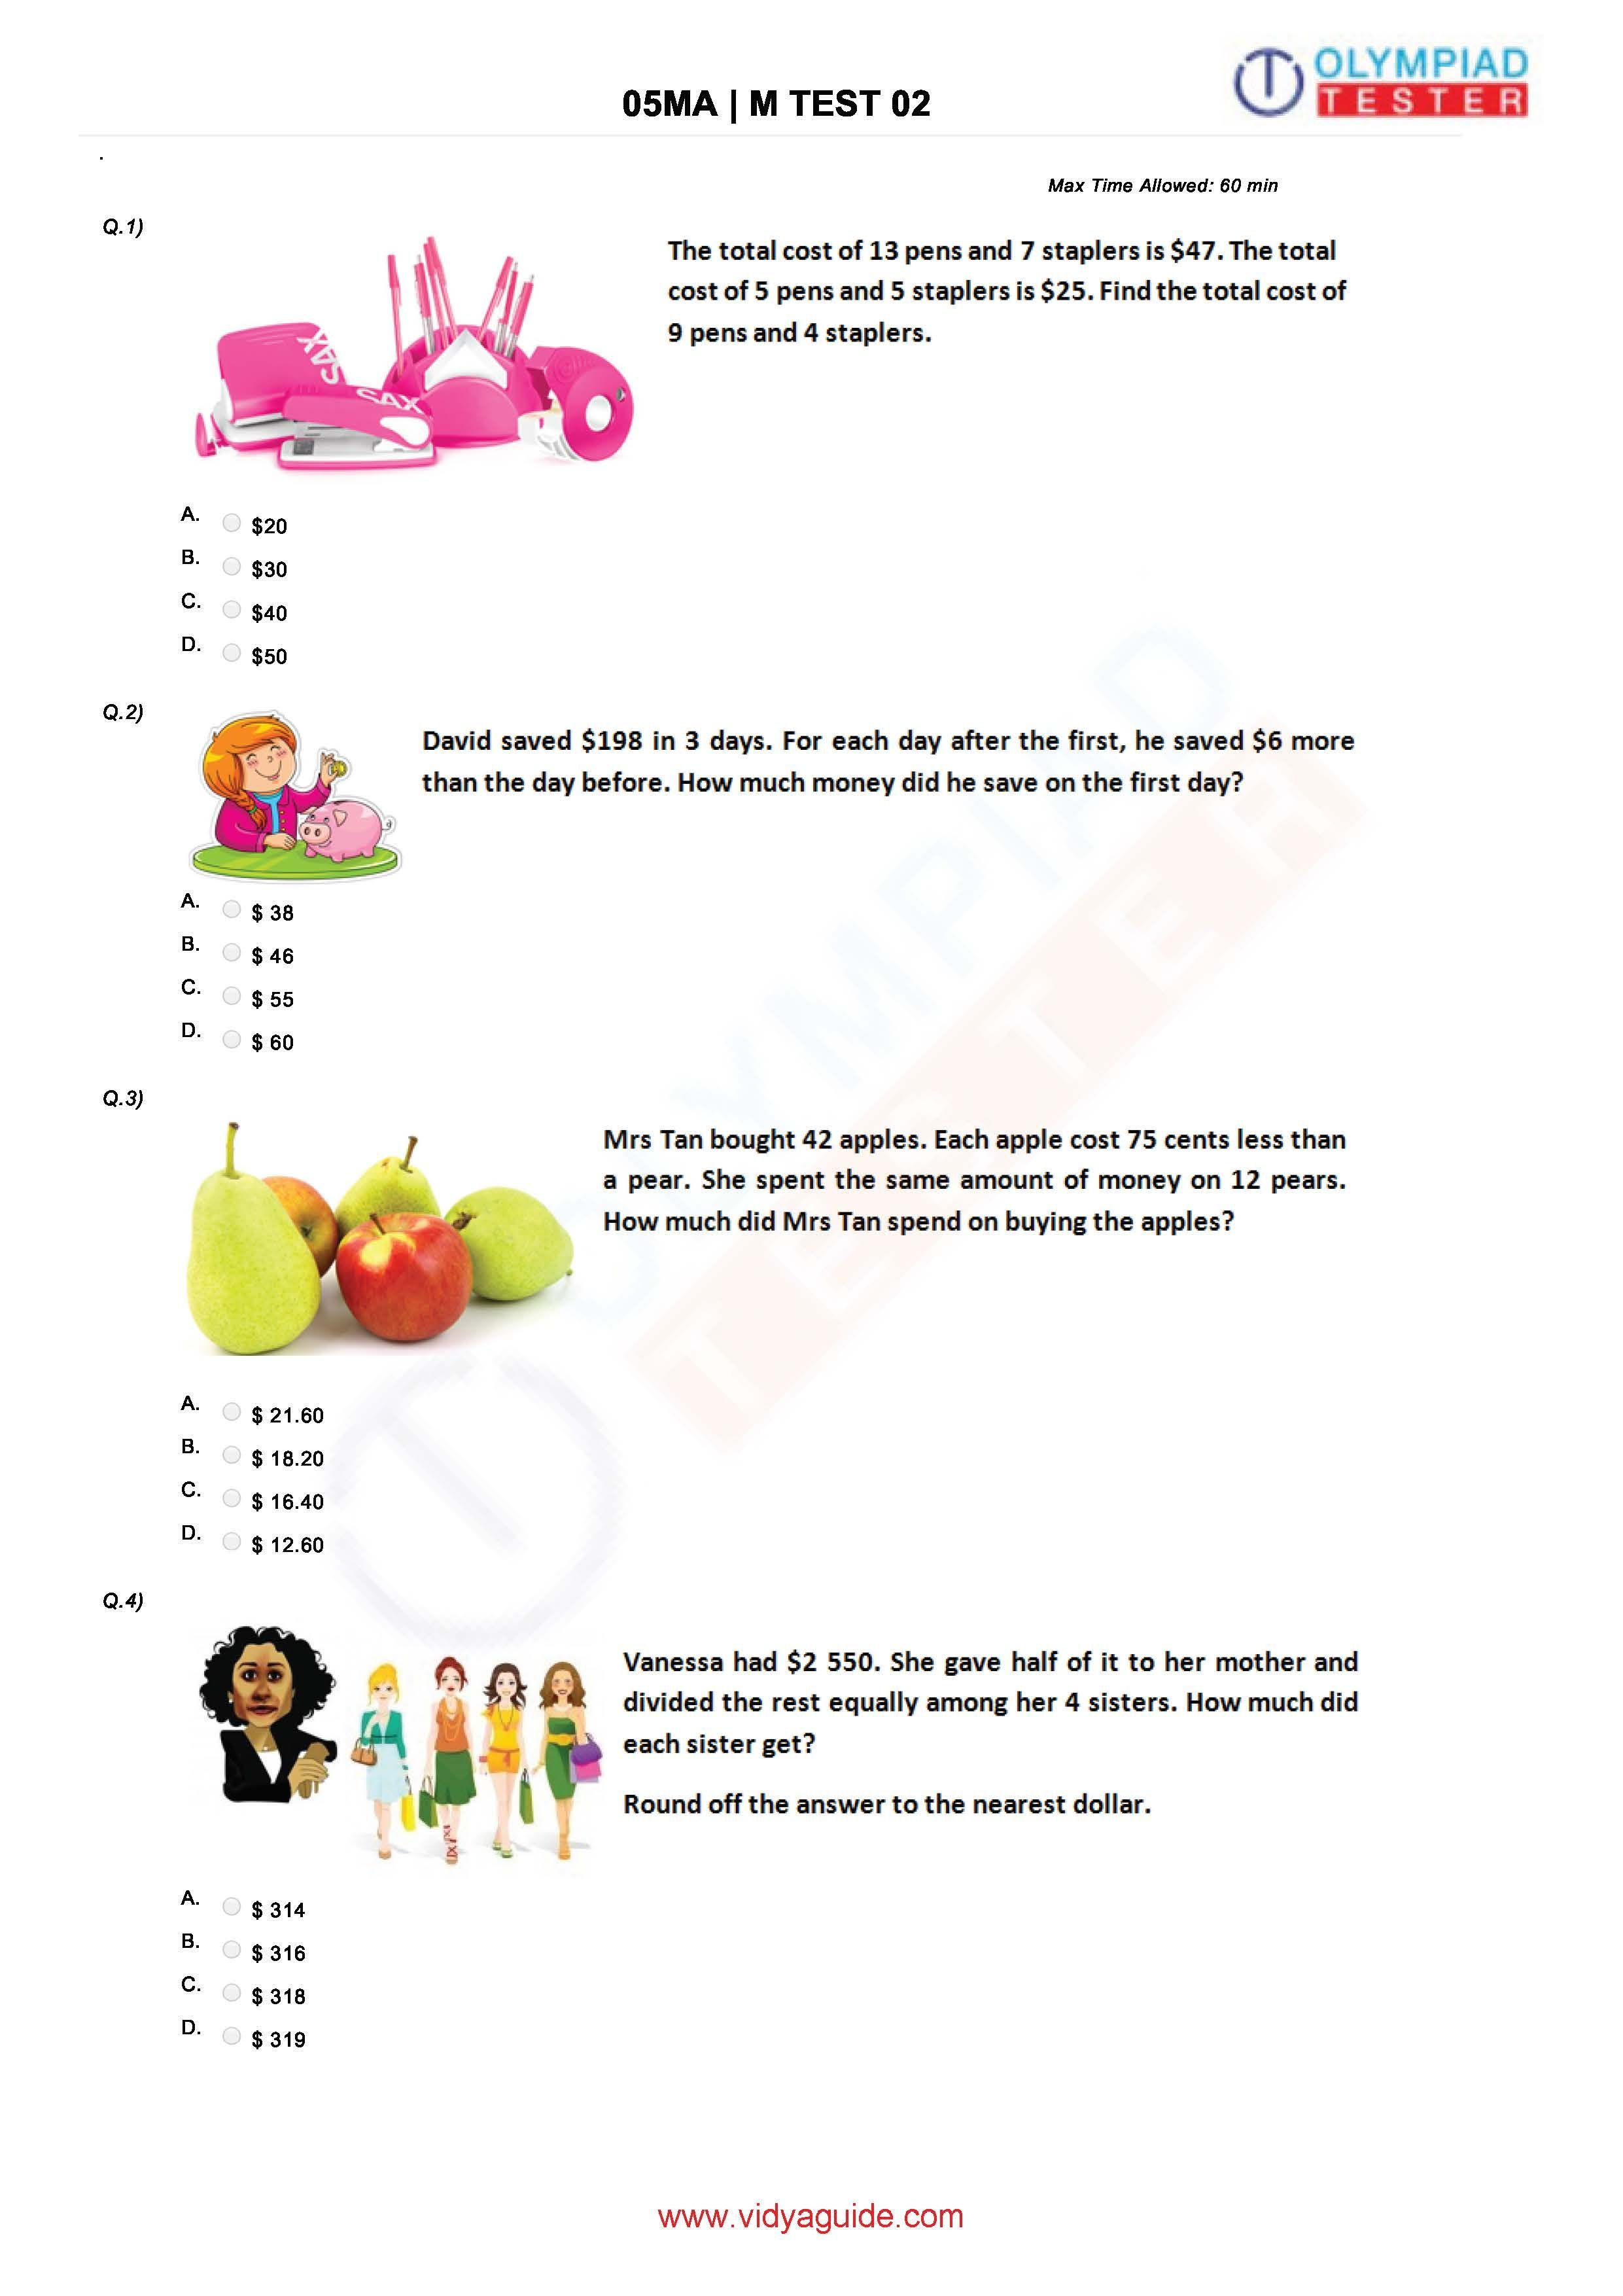 medium resolution of Download free Grade 5 Maths printable worksheets or take these tests online  at Vidyaguide   Math olympiad